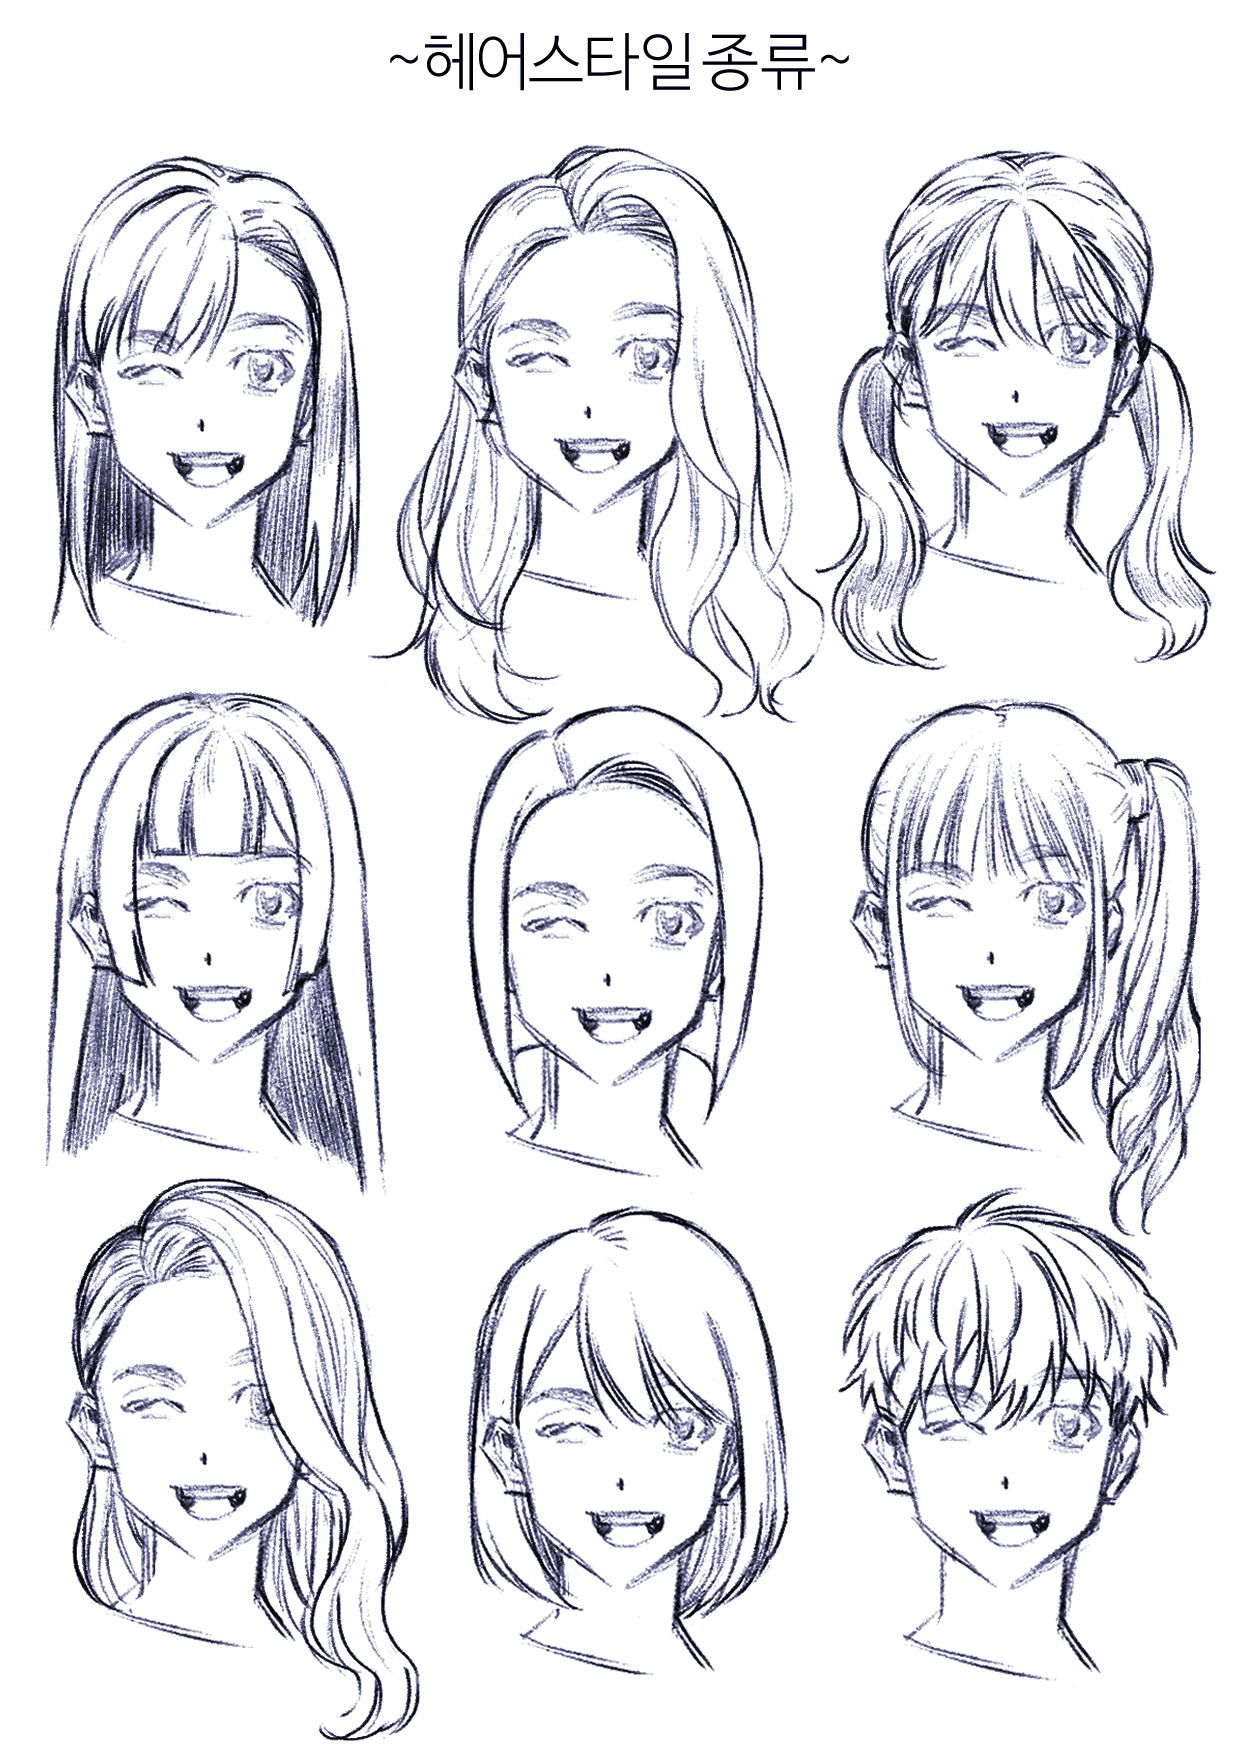 계양 애니포스 자료봇 (@GY_ANIFORCE) -   12 boy hair Drawing ideas